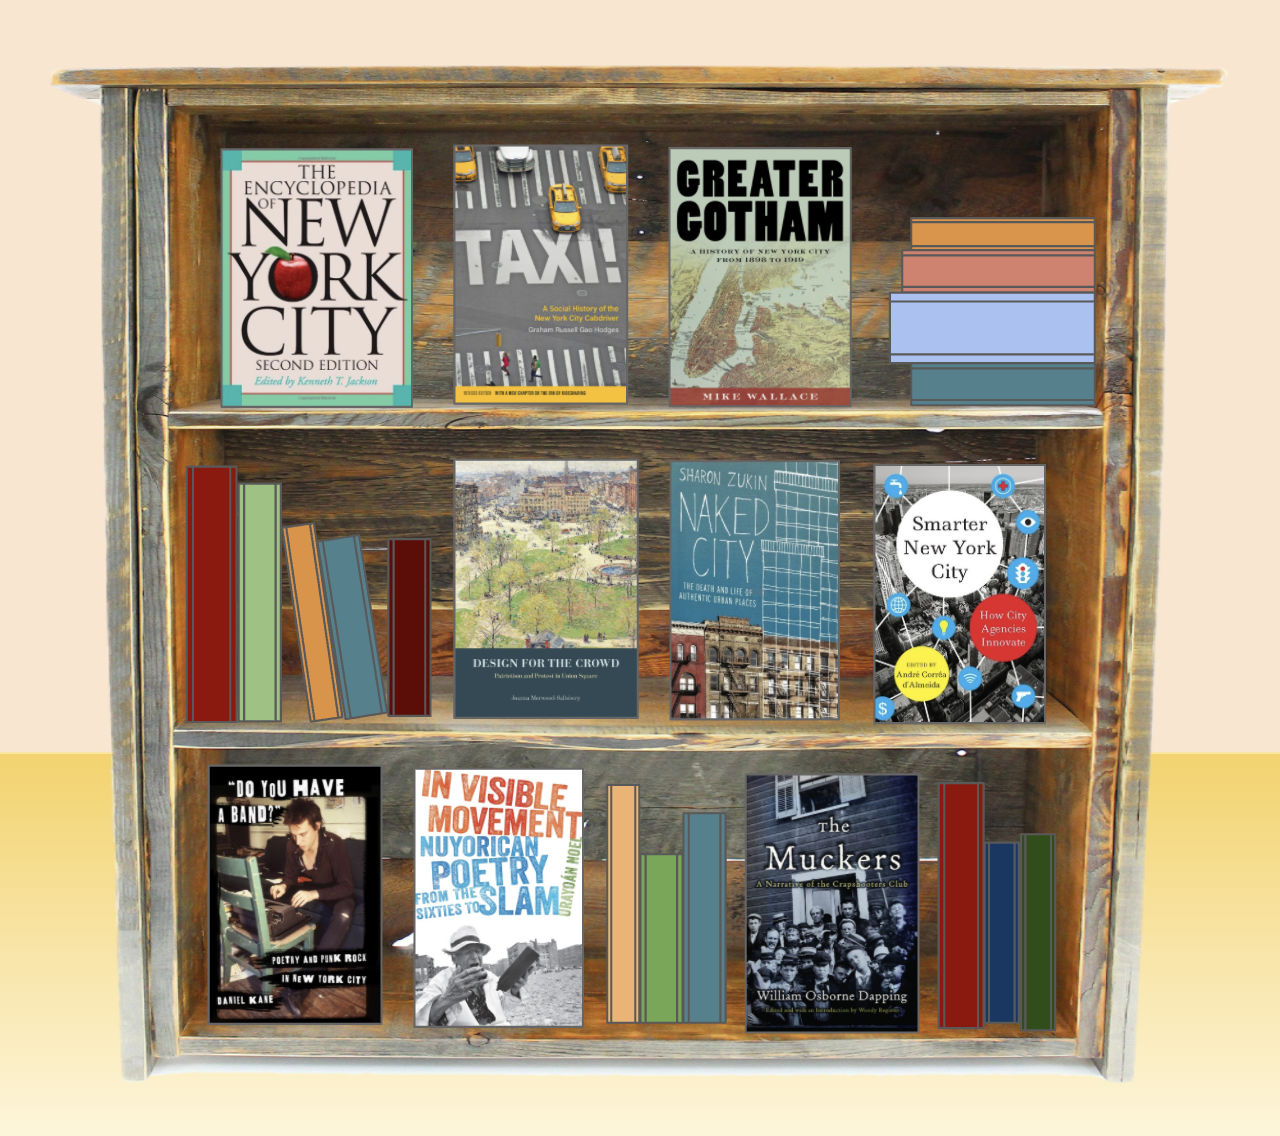 Virtual Book Display Brings NYC to You